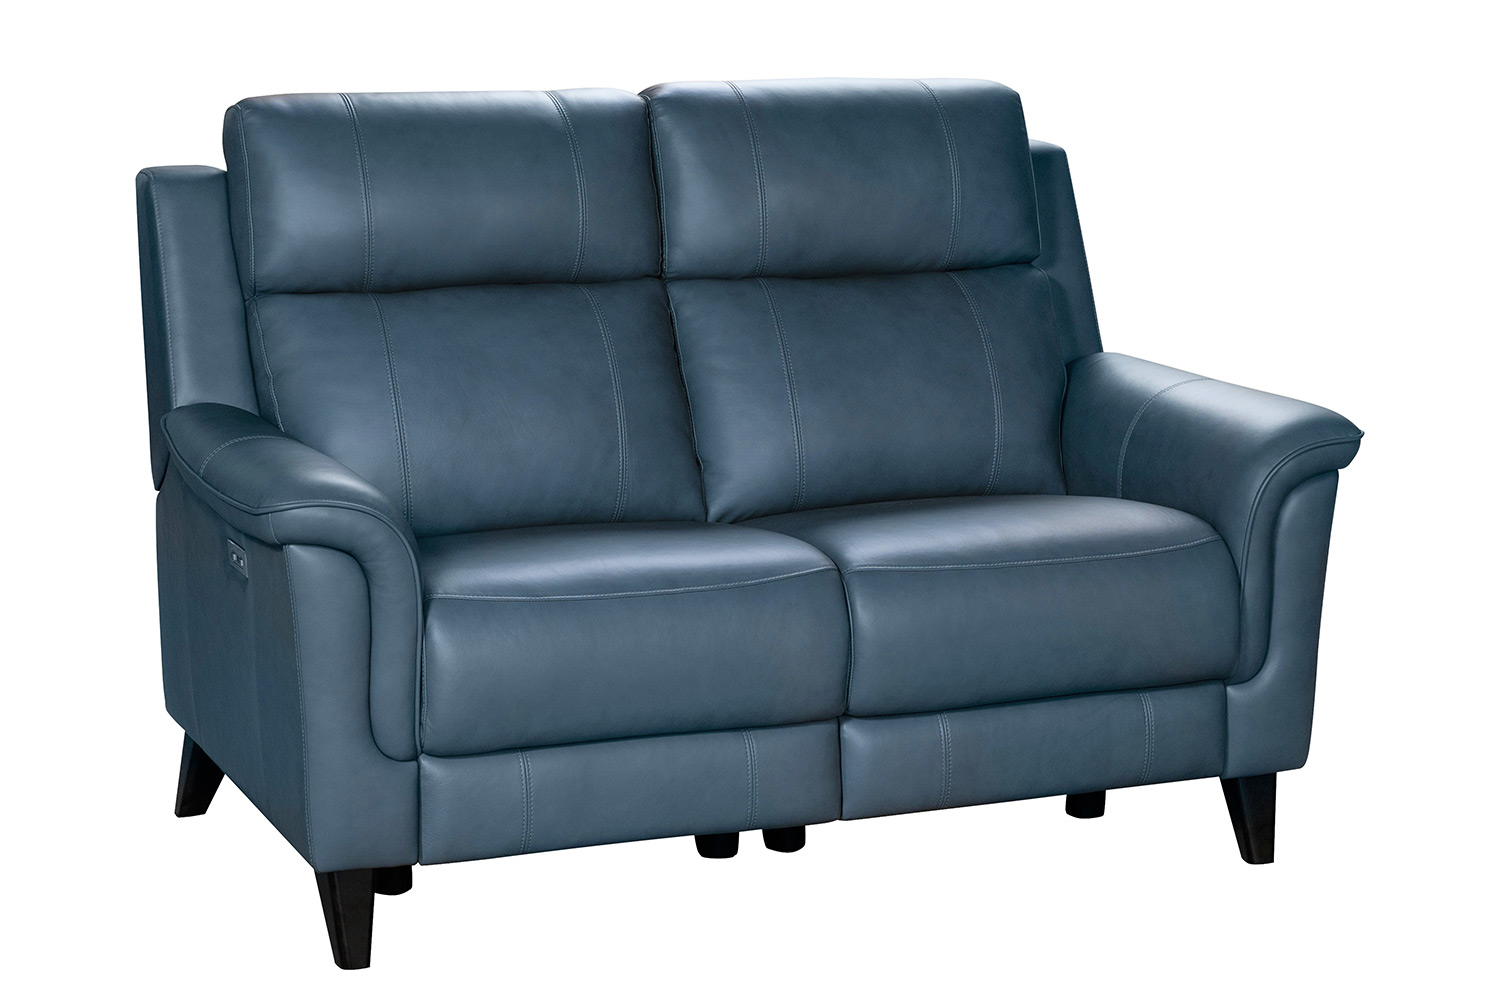 Barcalounger Kester Power Reclining Loveseat with Power Head Rests - Masen Bluegray/Leather match